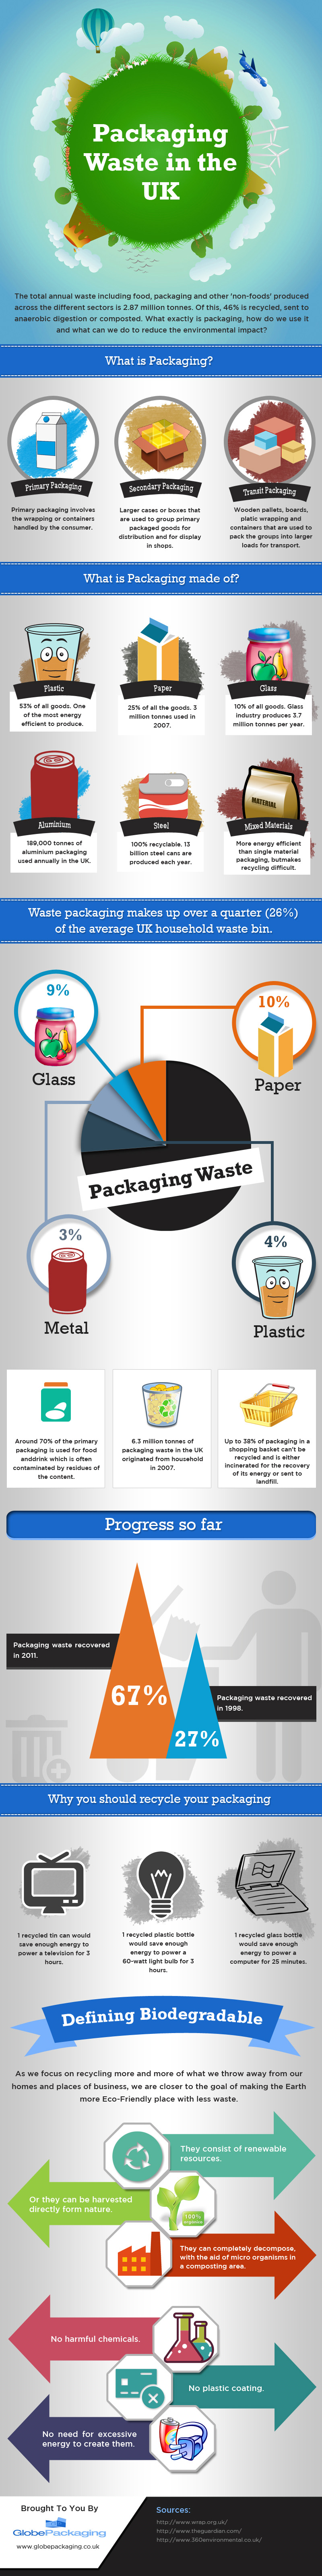 Facts and Statistics about Packaging Waste in UK [Infographic]